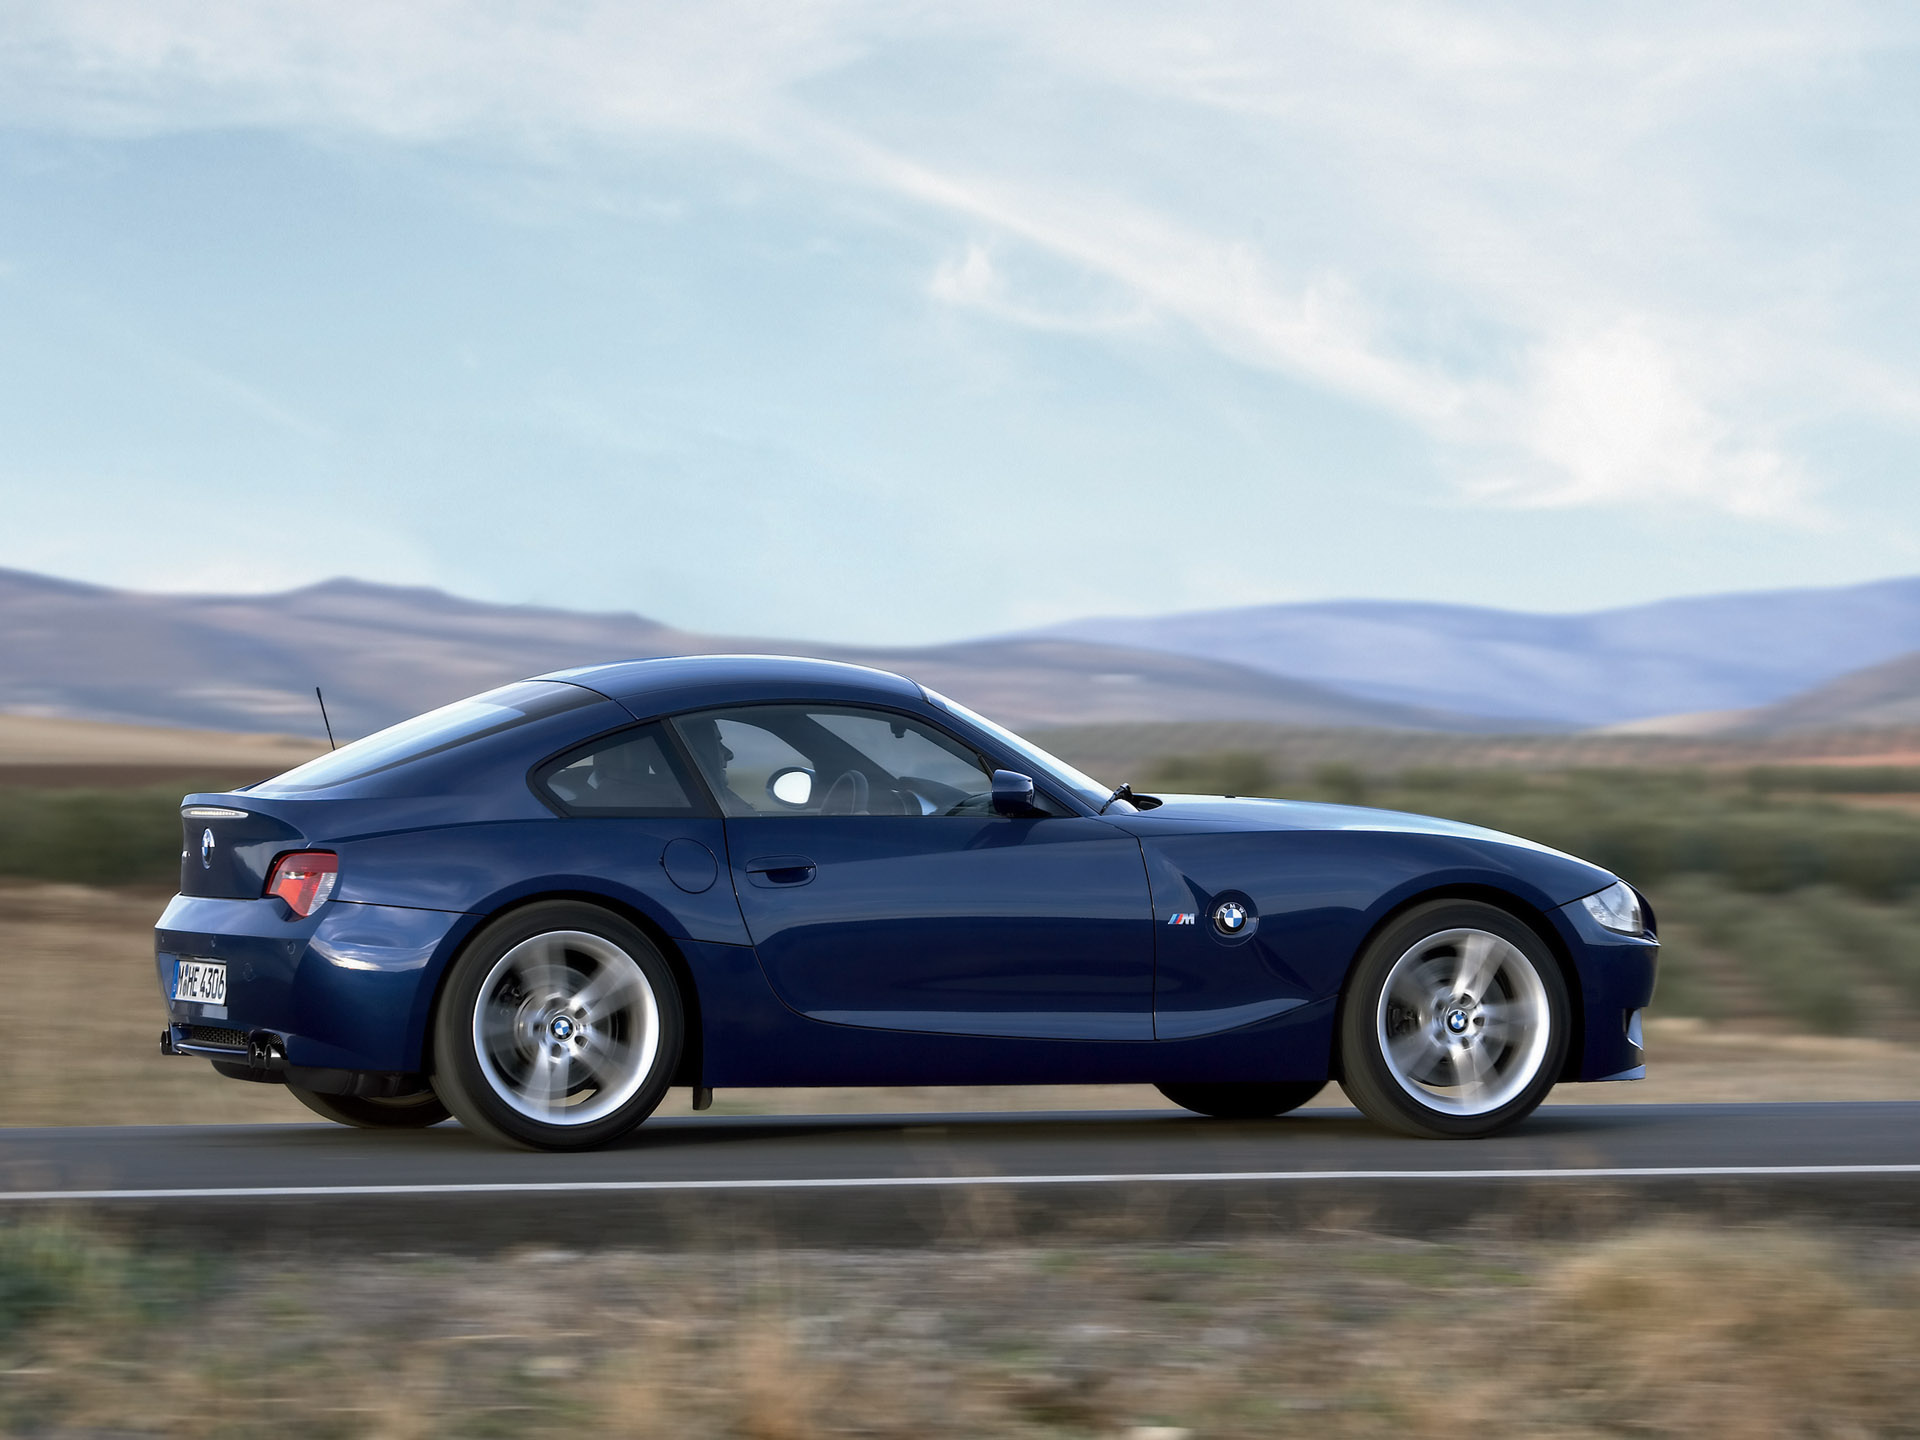 2006 Bmw Z4 M Coupe Image Photo 12 Of 12